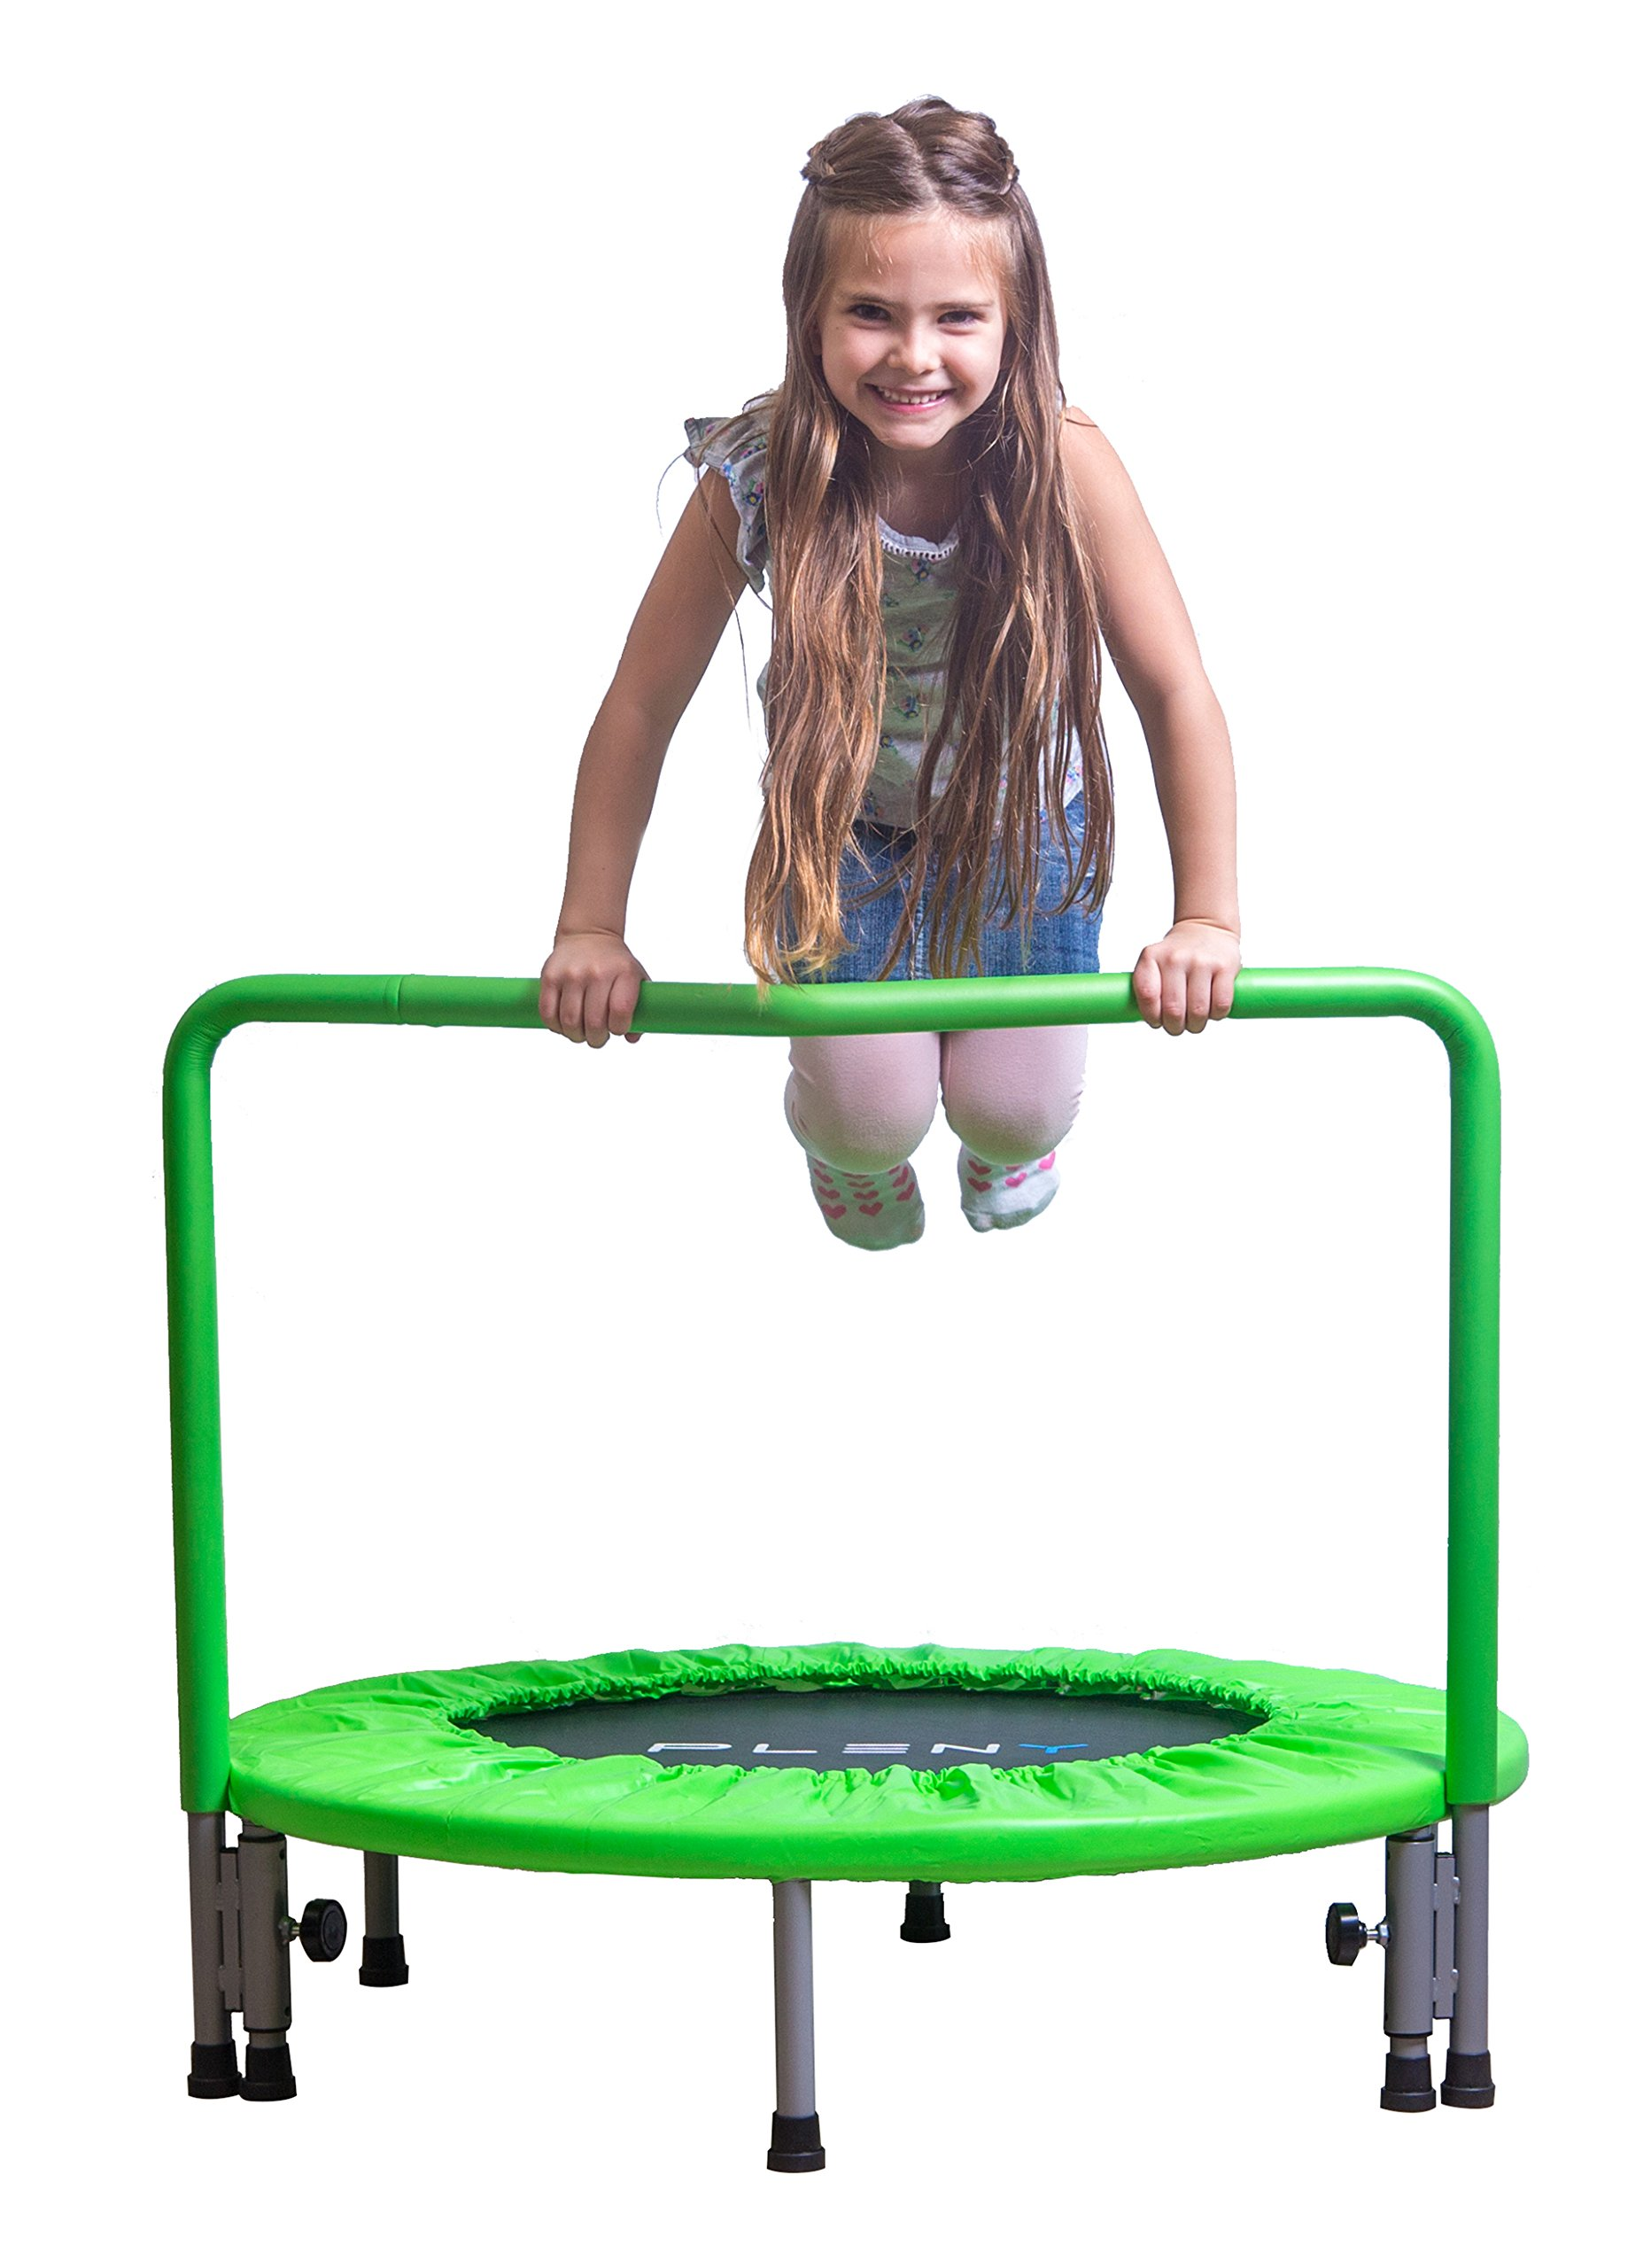 PLENY 36 inches Trampoline Handle Toddlers, Safety Kids Mini Trampoline (Apple Green)